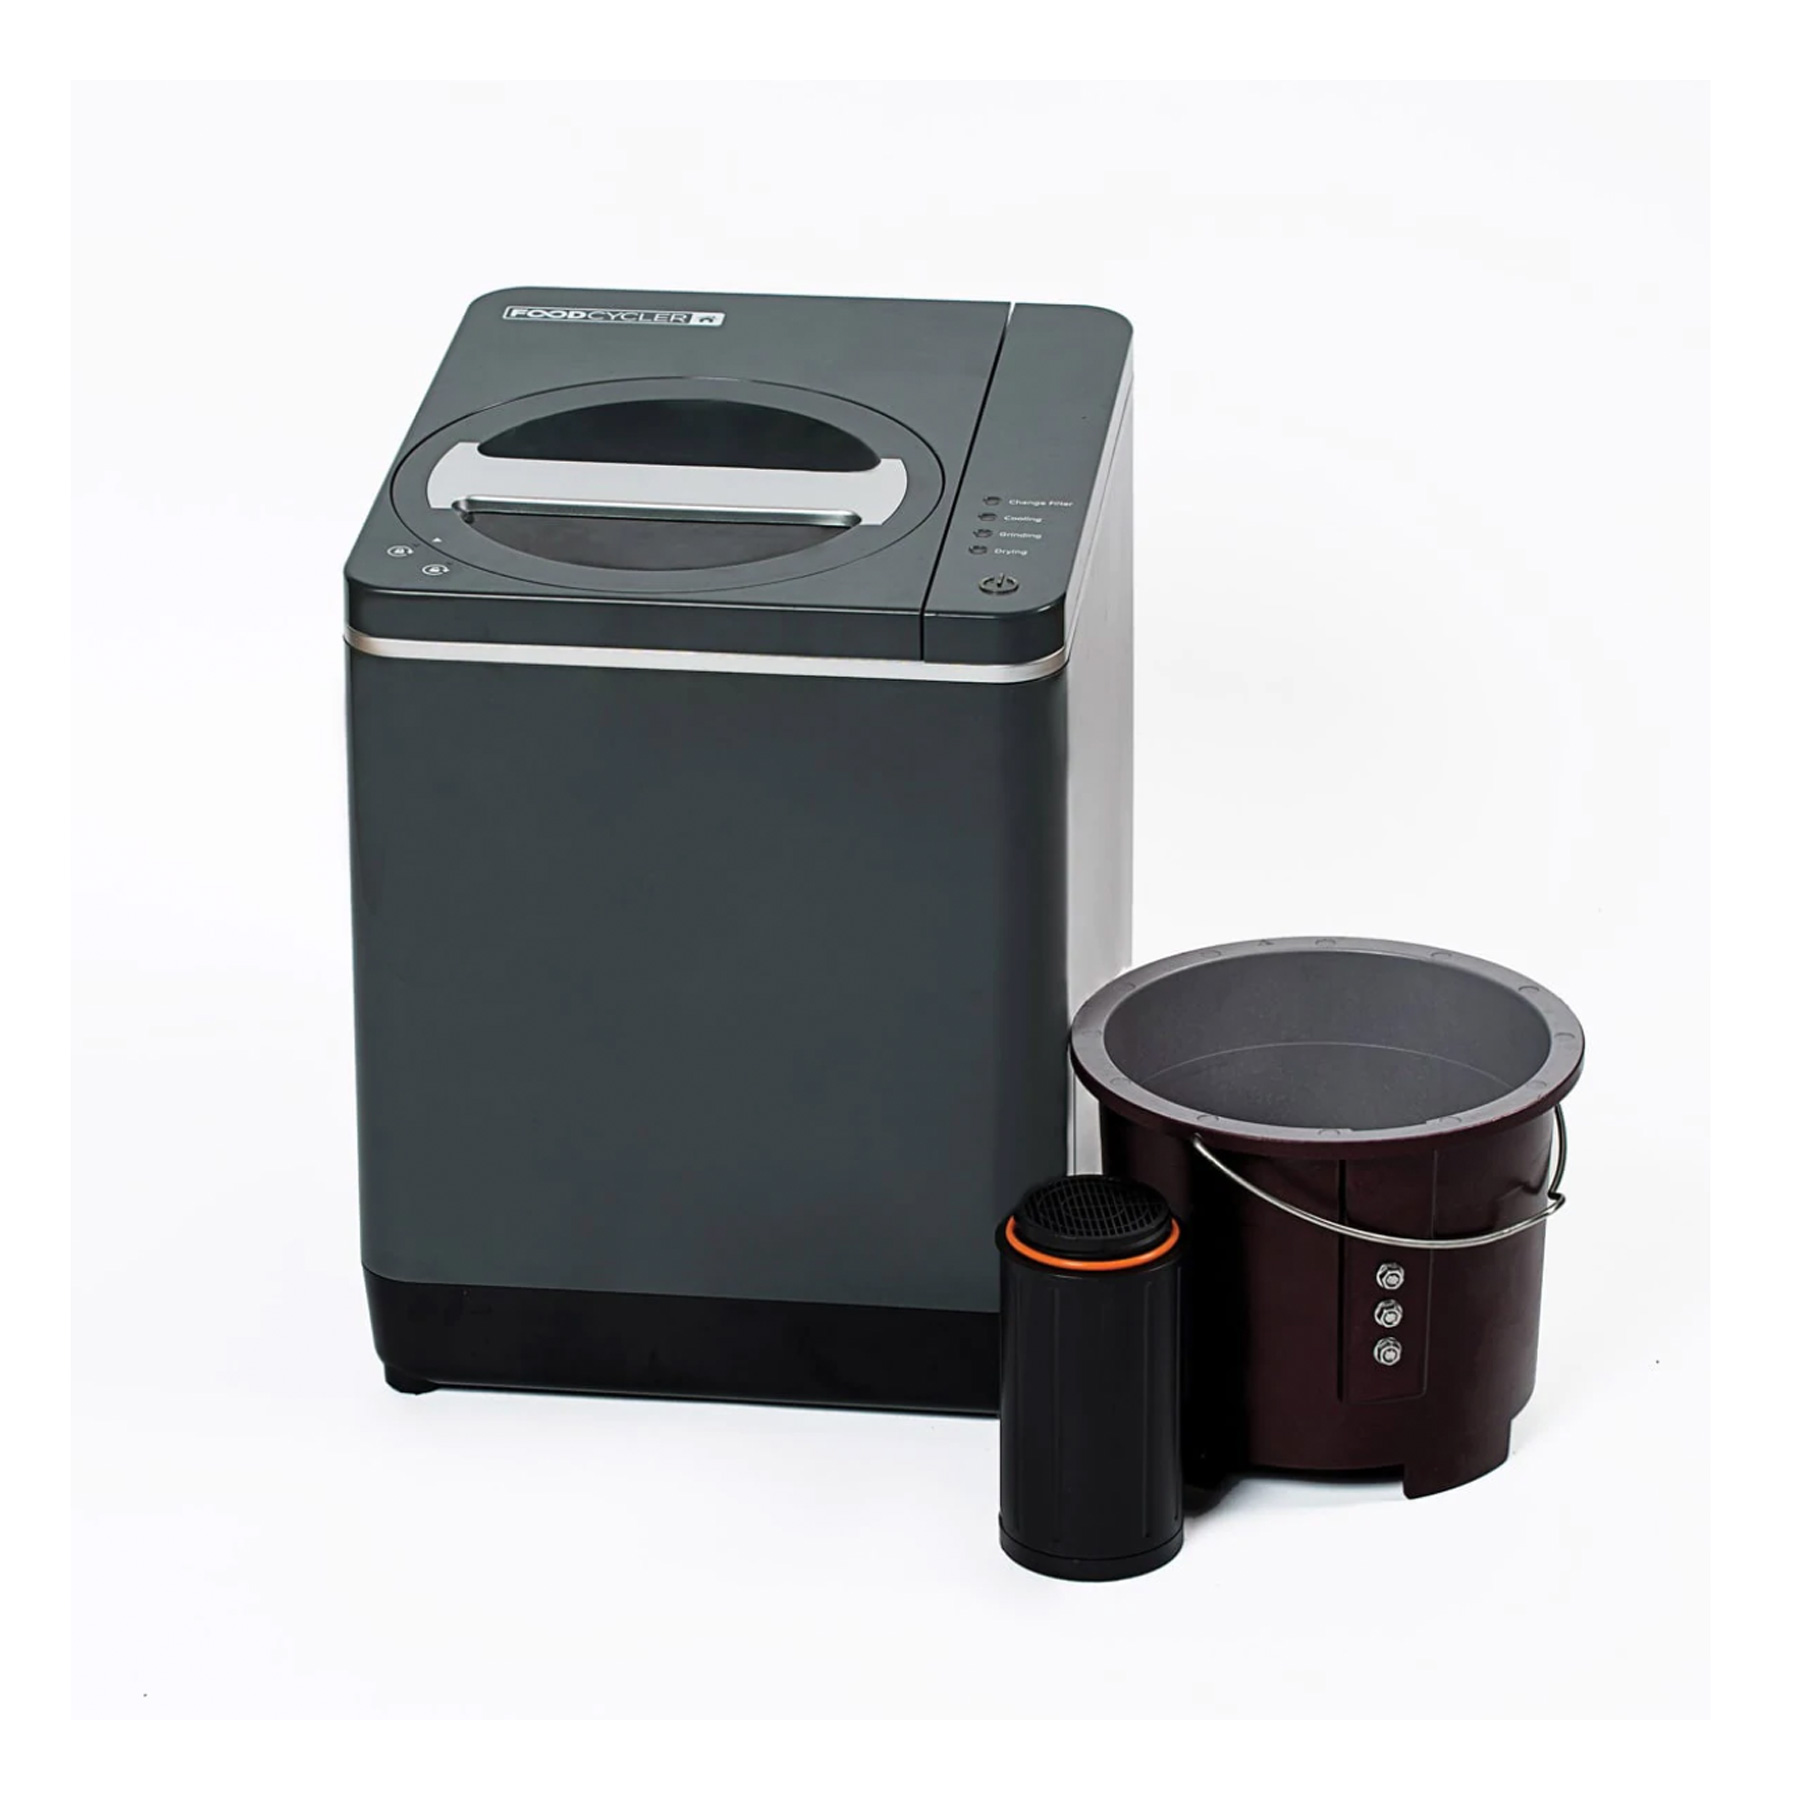 At-Home Composting System: Vitamix FoodCycler FC-30 composter